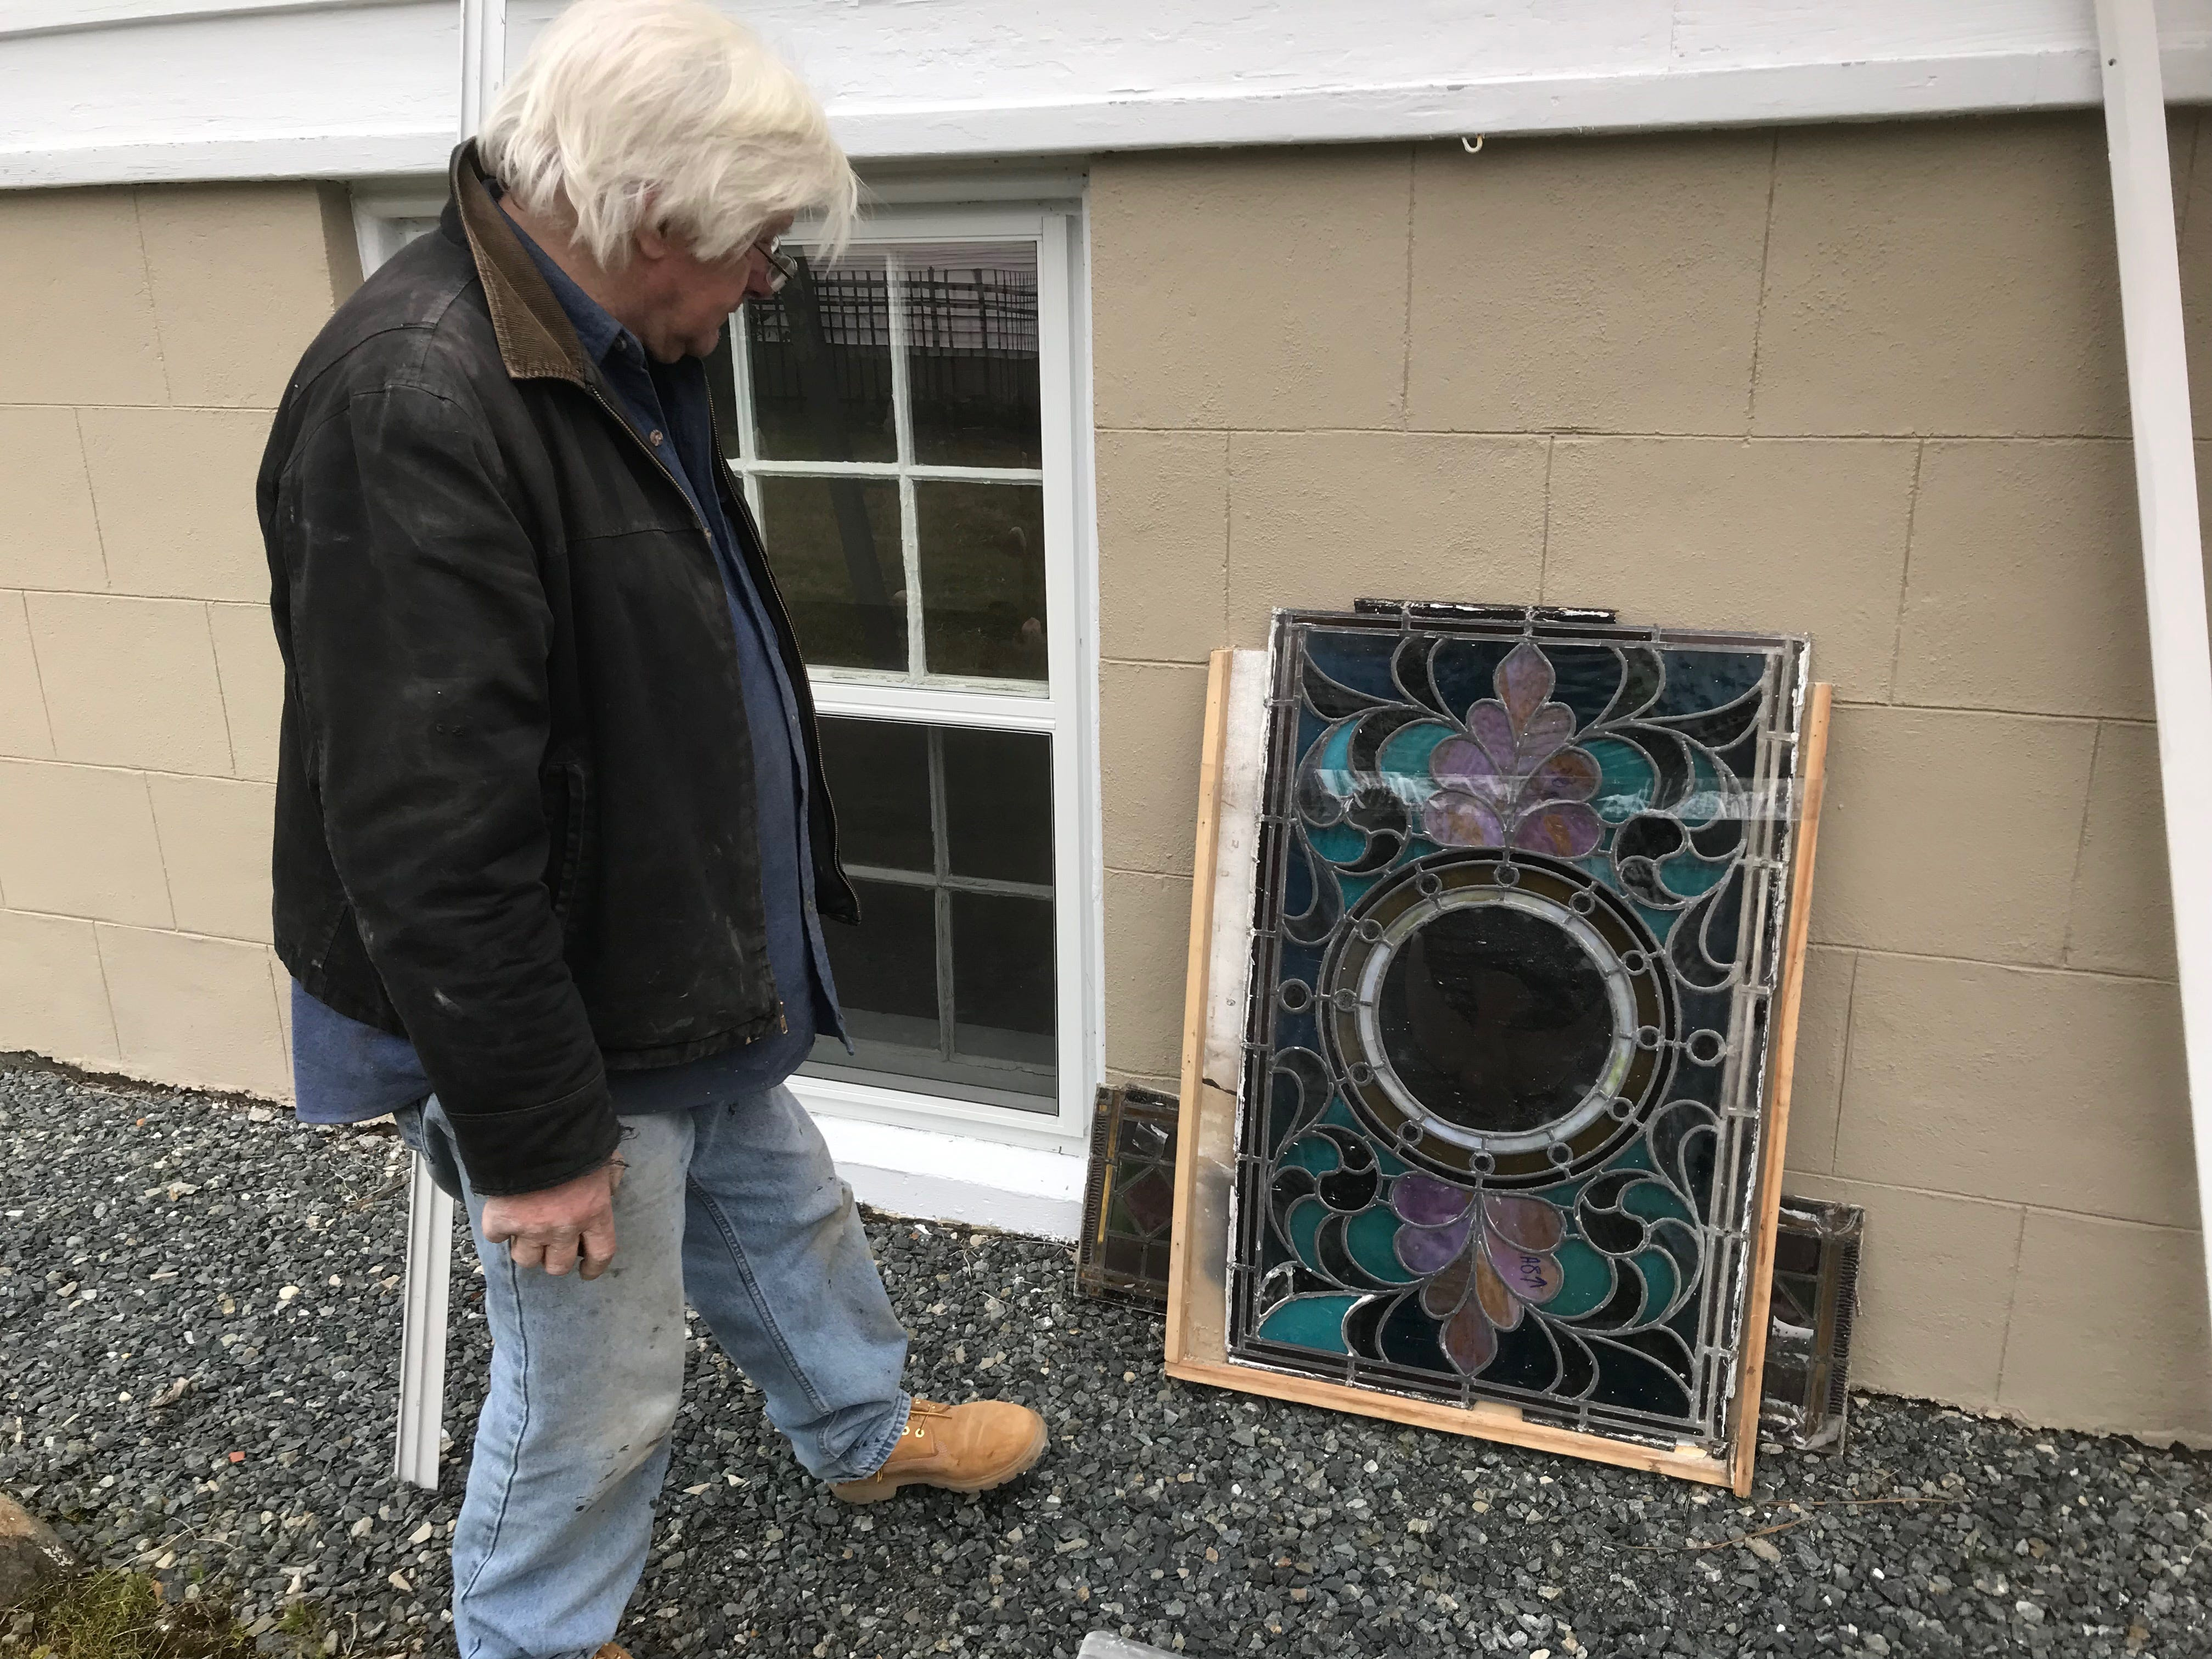 Michael Mezalick inspects a stained glass window he just removed from its frame at Historic Cokesbury Church in Onancock, VIrginia on Monday, Jan. 28, 2019. Mazalick is restoring the final three stained glass windows at the church — the end of a nearly 15-year-long restoration project.